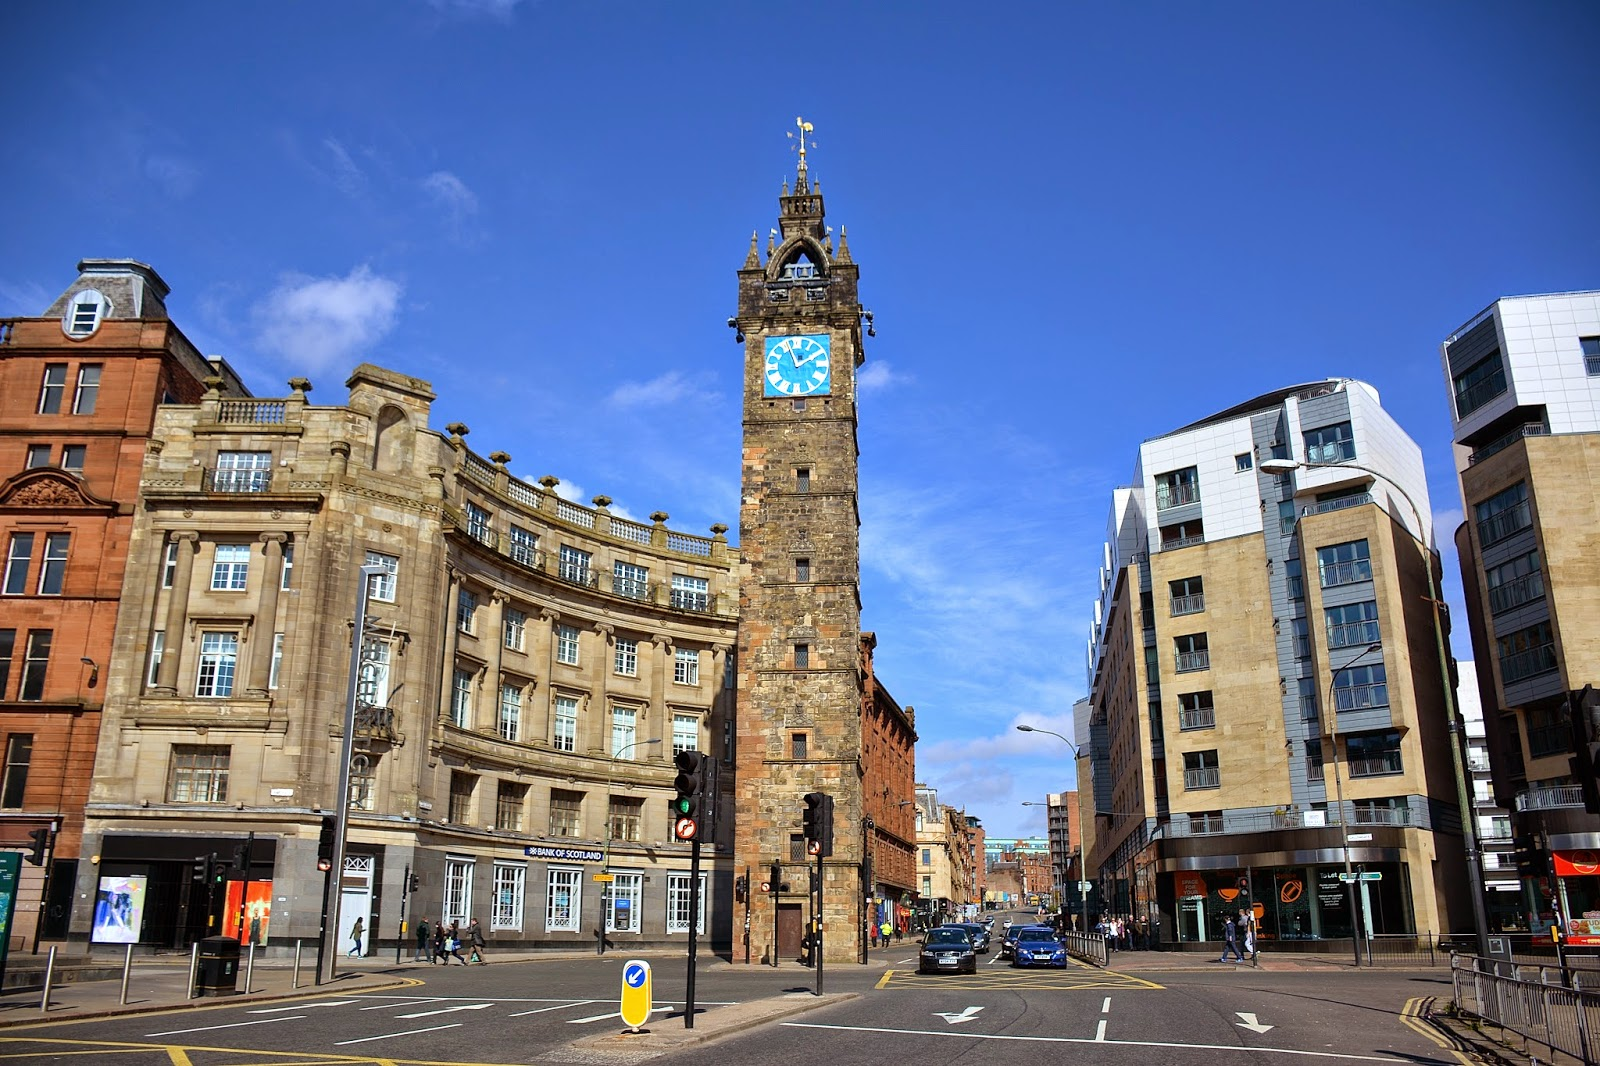 Tolbooth Steeple in Glasgow